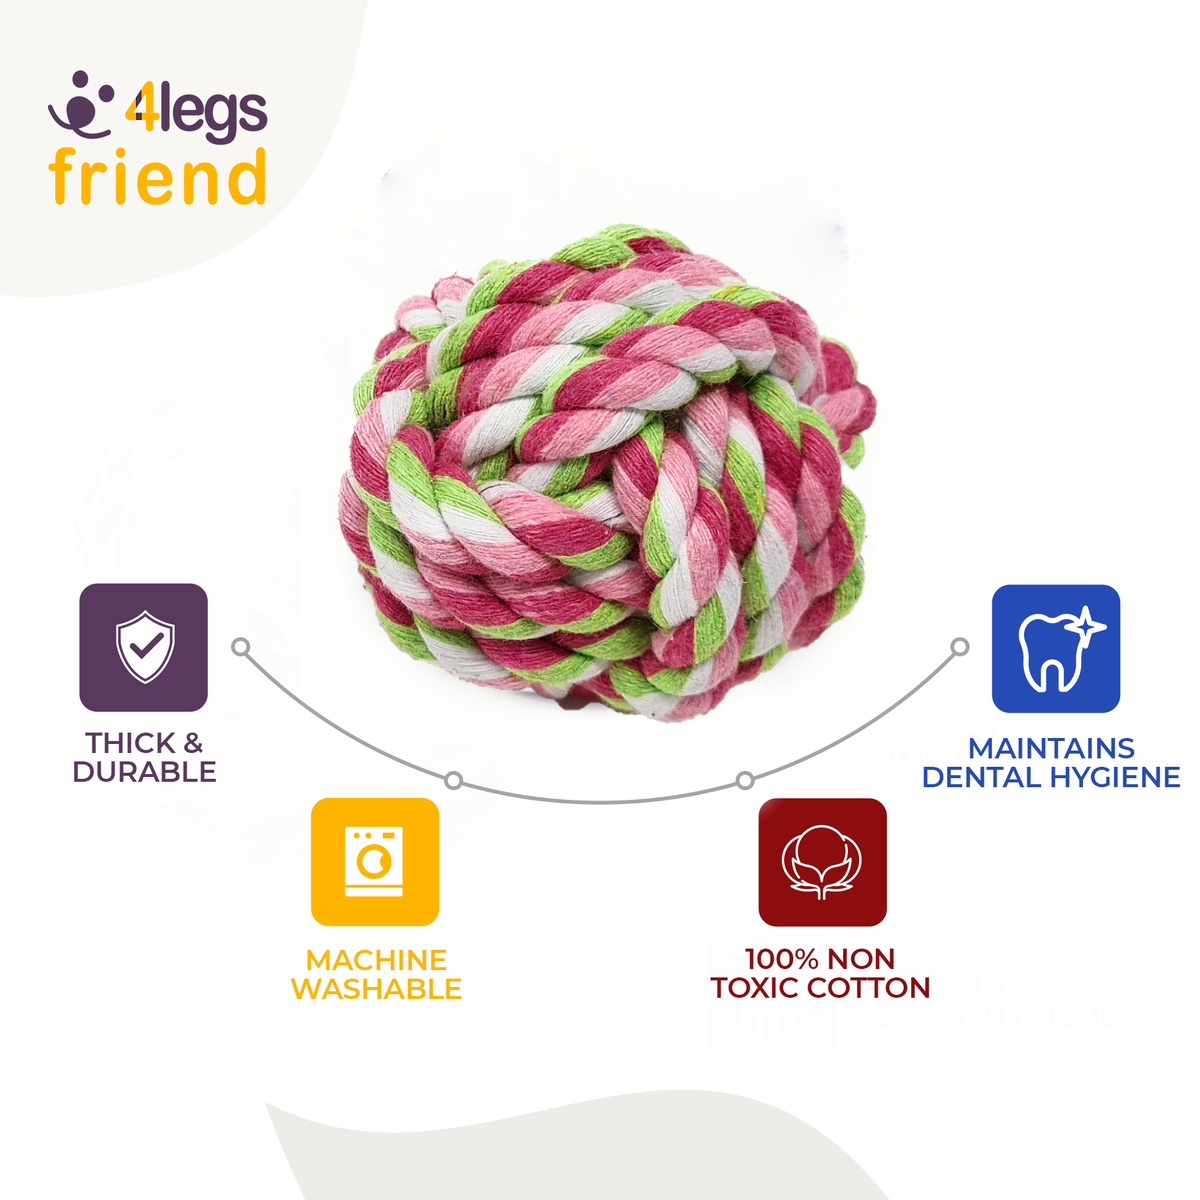 4LegsFriend Dog Puppy Pet Cotton Rope Toys for Small to Medium Dogs. Machine Washable Dental Floss Toys - (Set of 6 Toys)